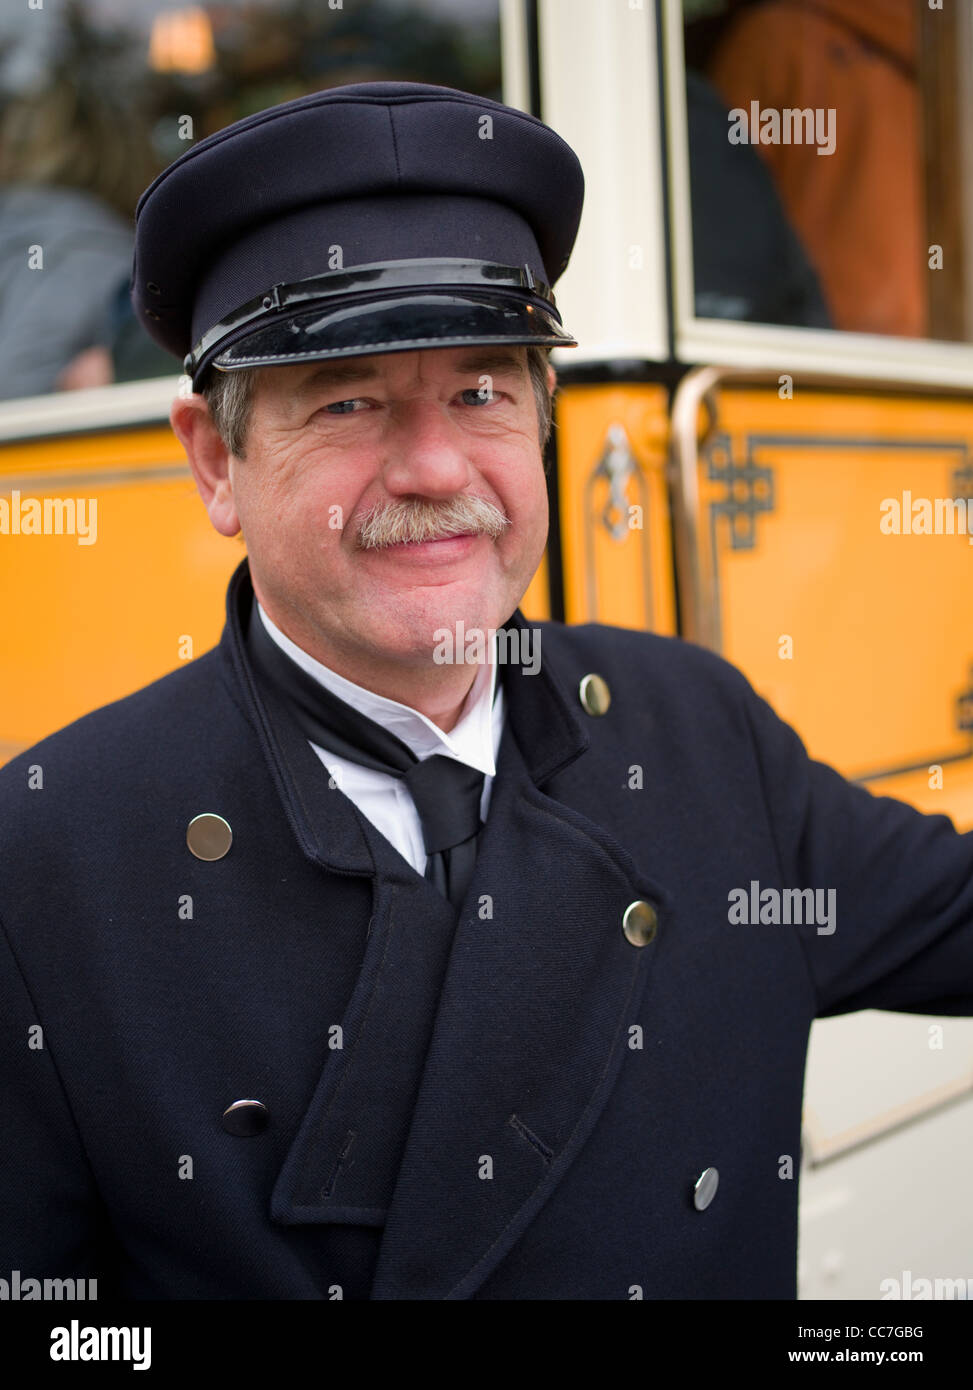 Bus conductor at Beamish, The North of England Open Air Museum County Durham ENGLAND - Stock Image